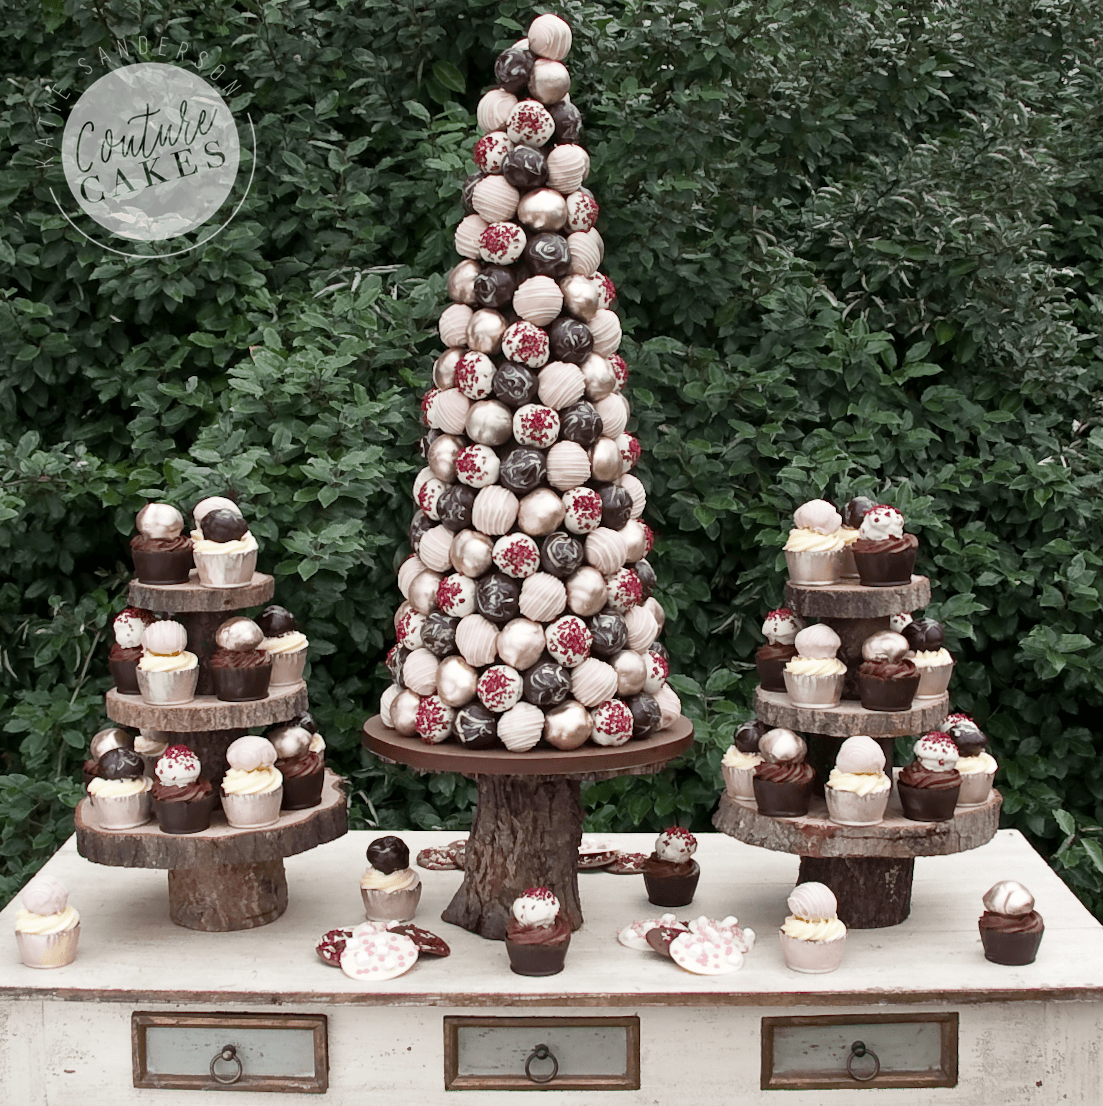 Price £395 (for 200 profiterole cone) plus £4.50 each for 40 cup cakes